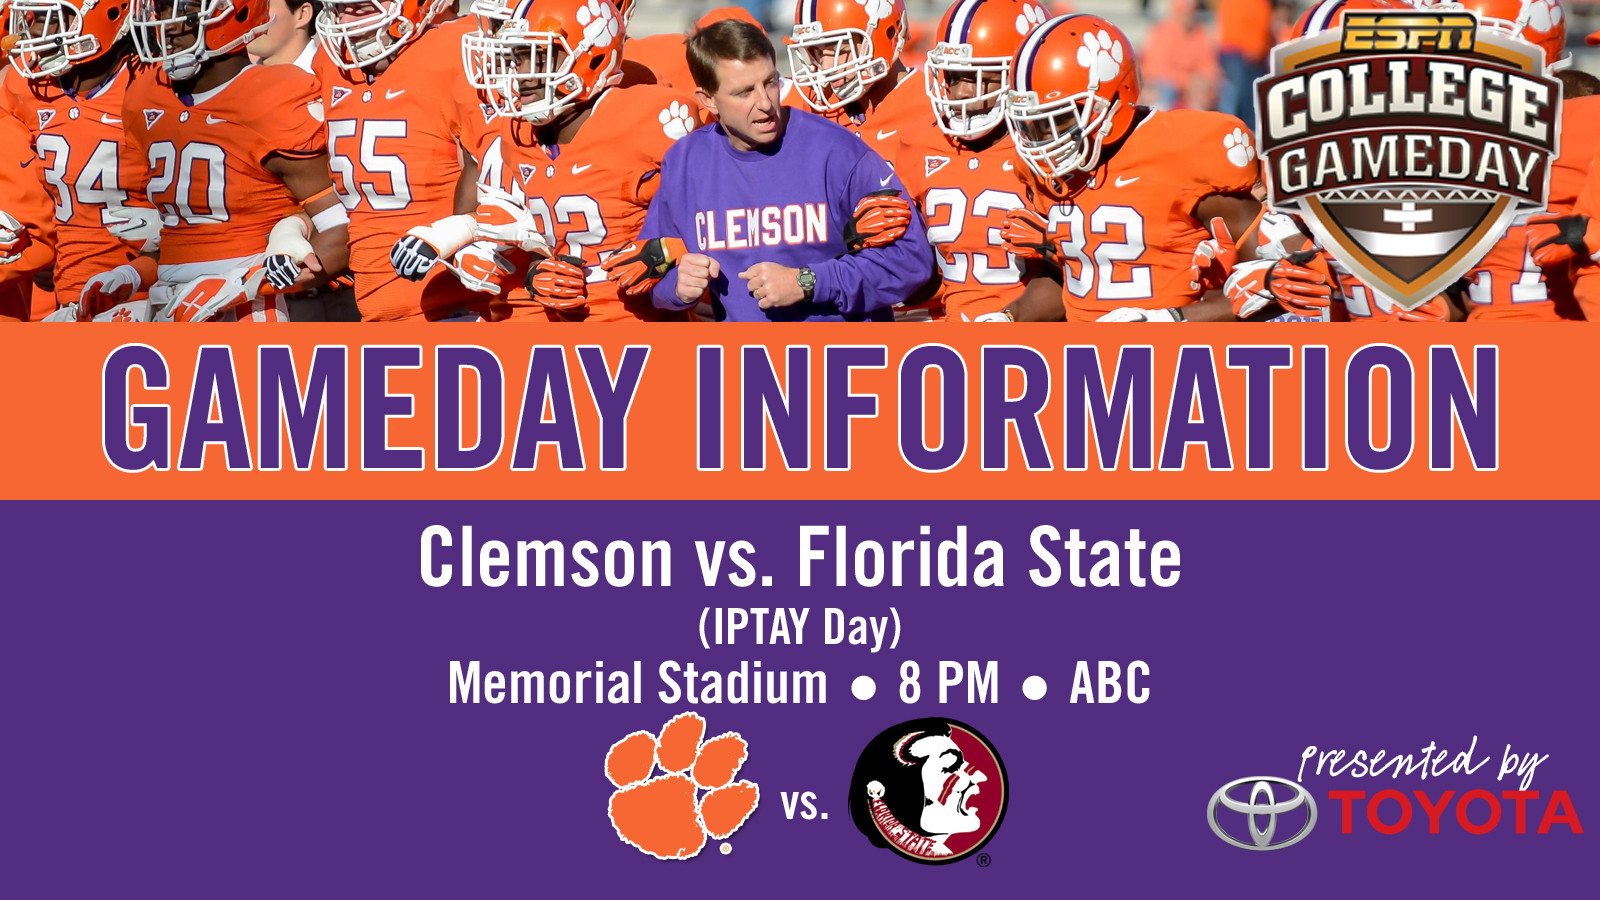 Clemson vs. Florida State Football Gameday Information Guide